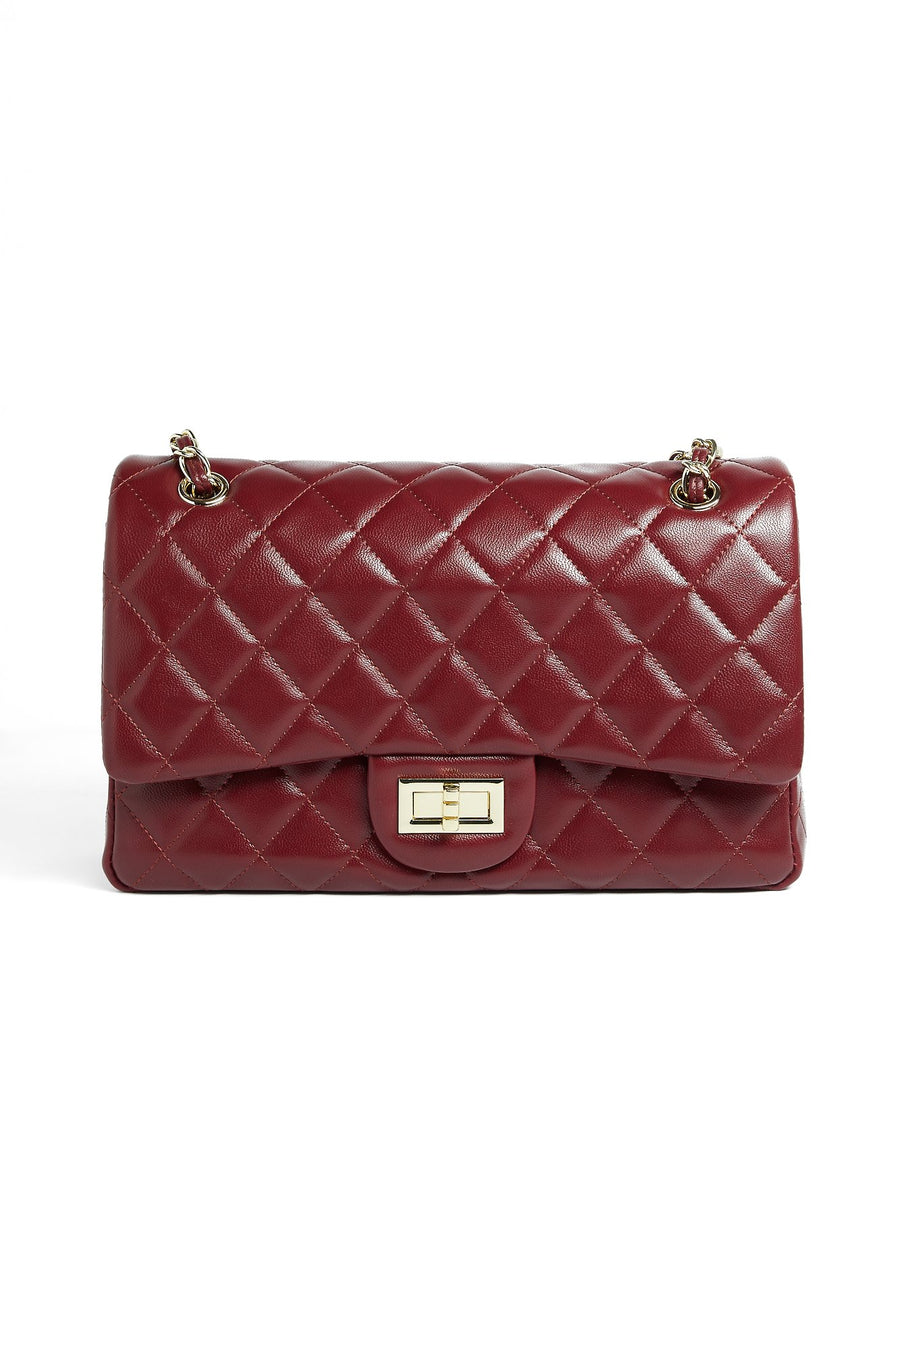 Call It Quilts Bag (Burgundy)